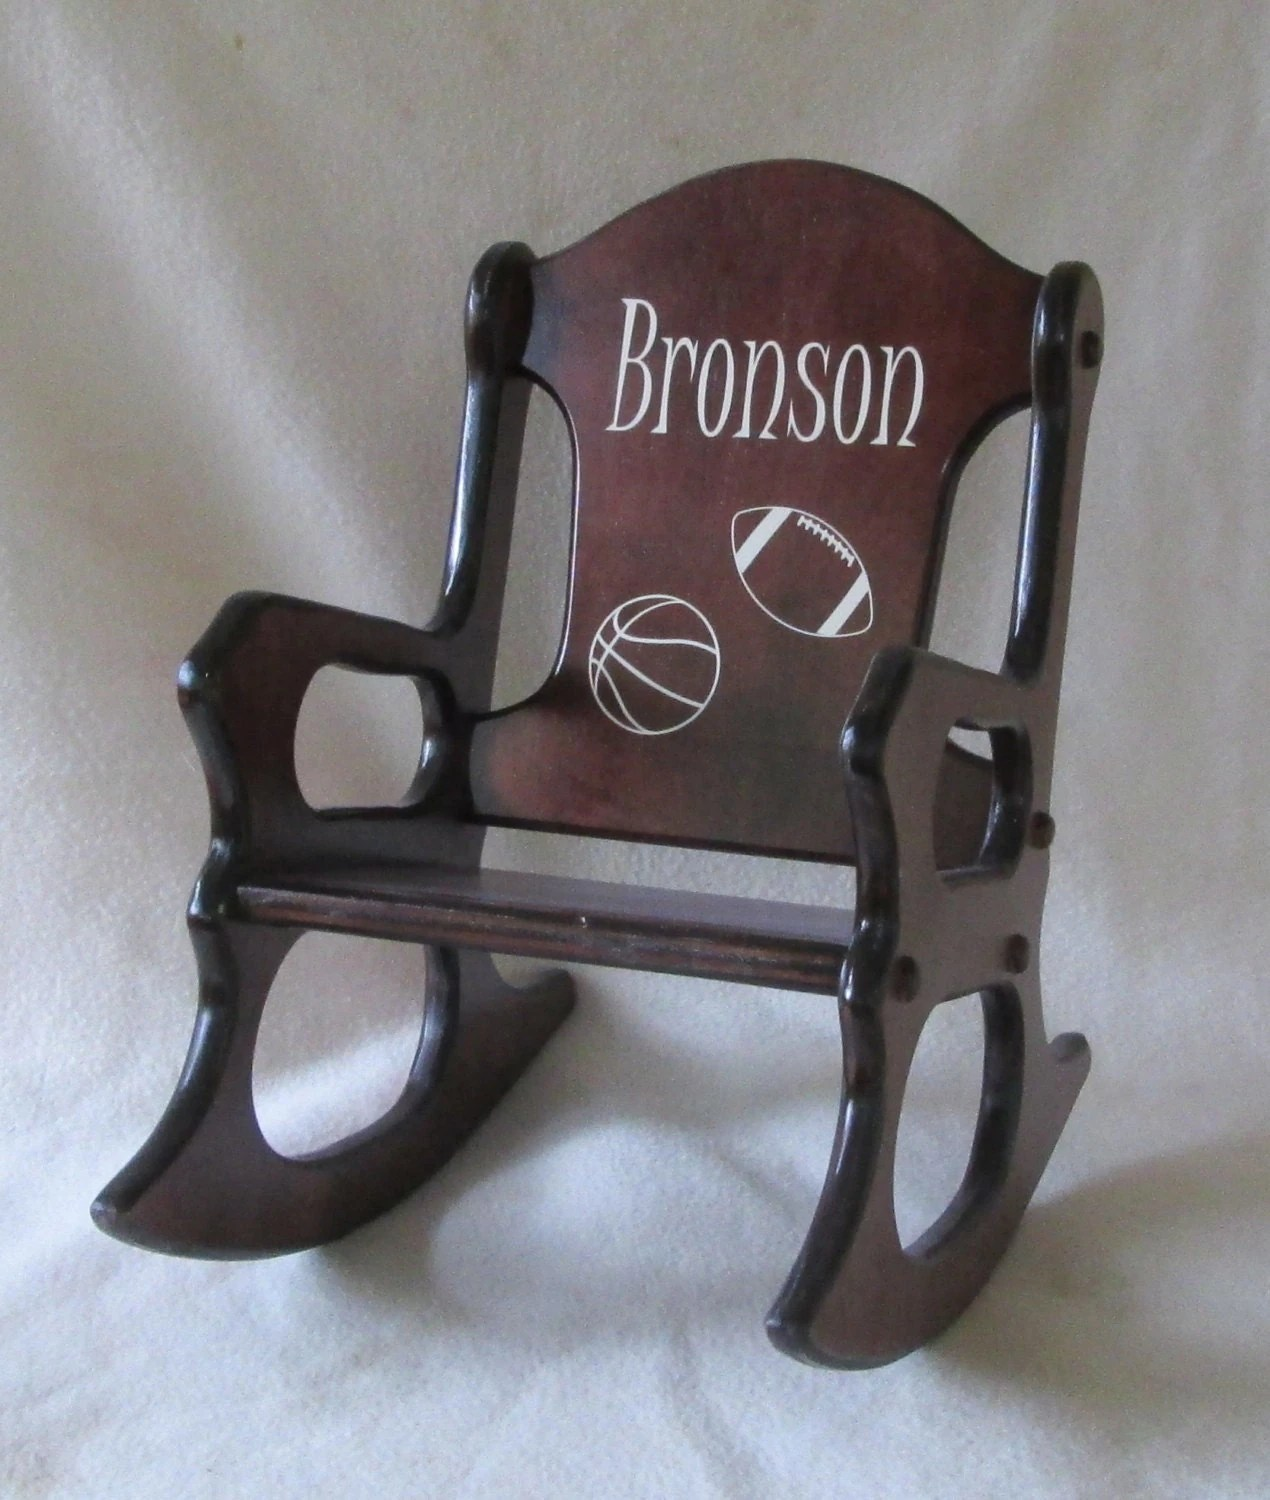 personalized little kid chair swivel outdoor wooden kids rocking sports cherry finish